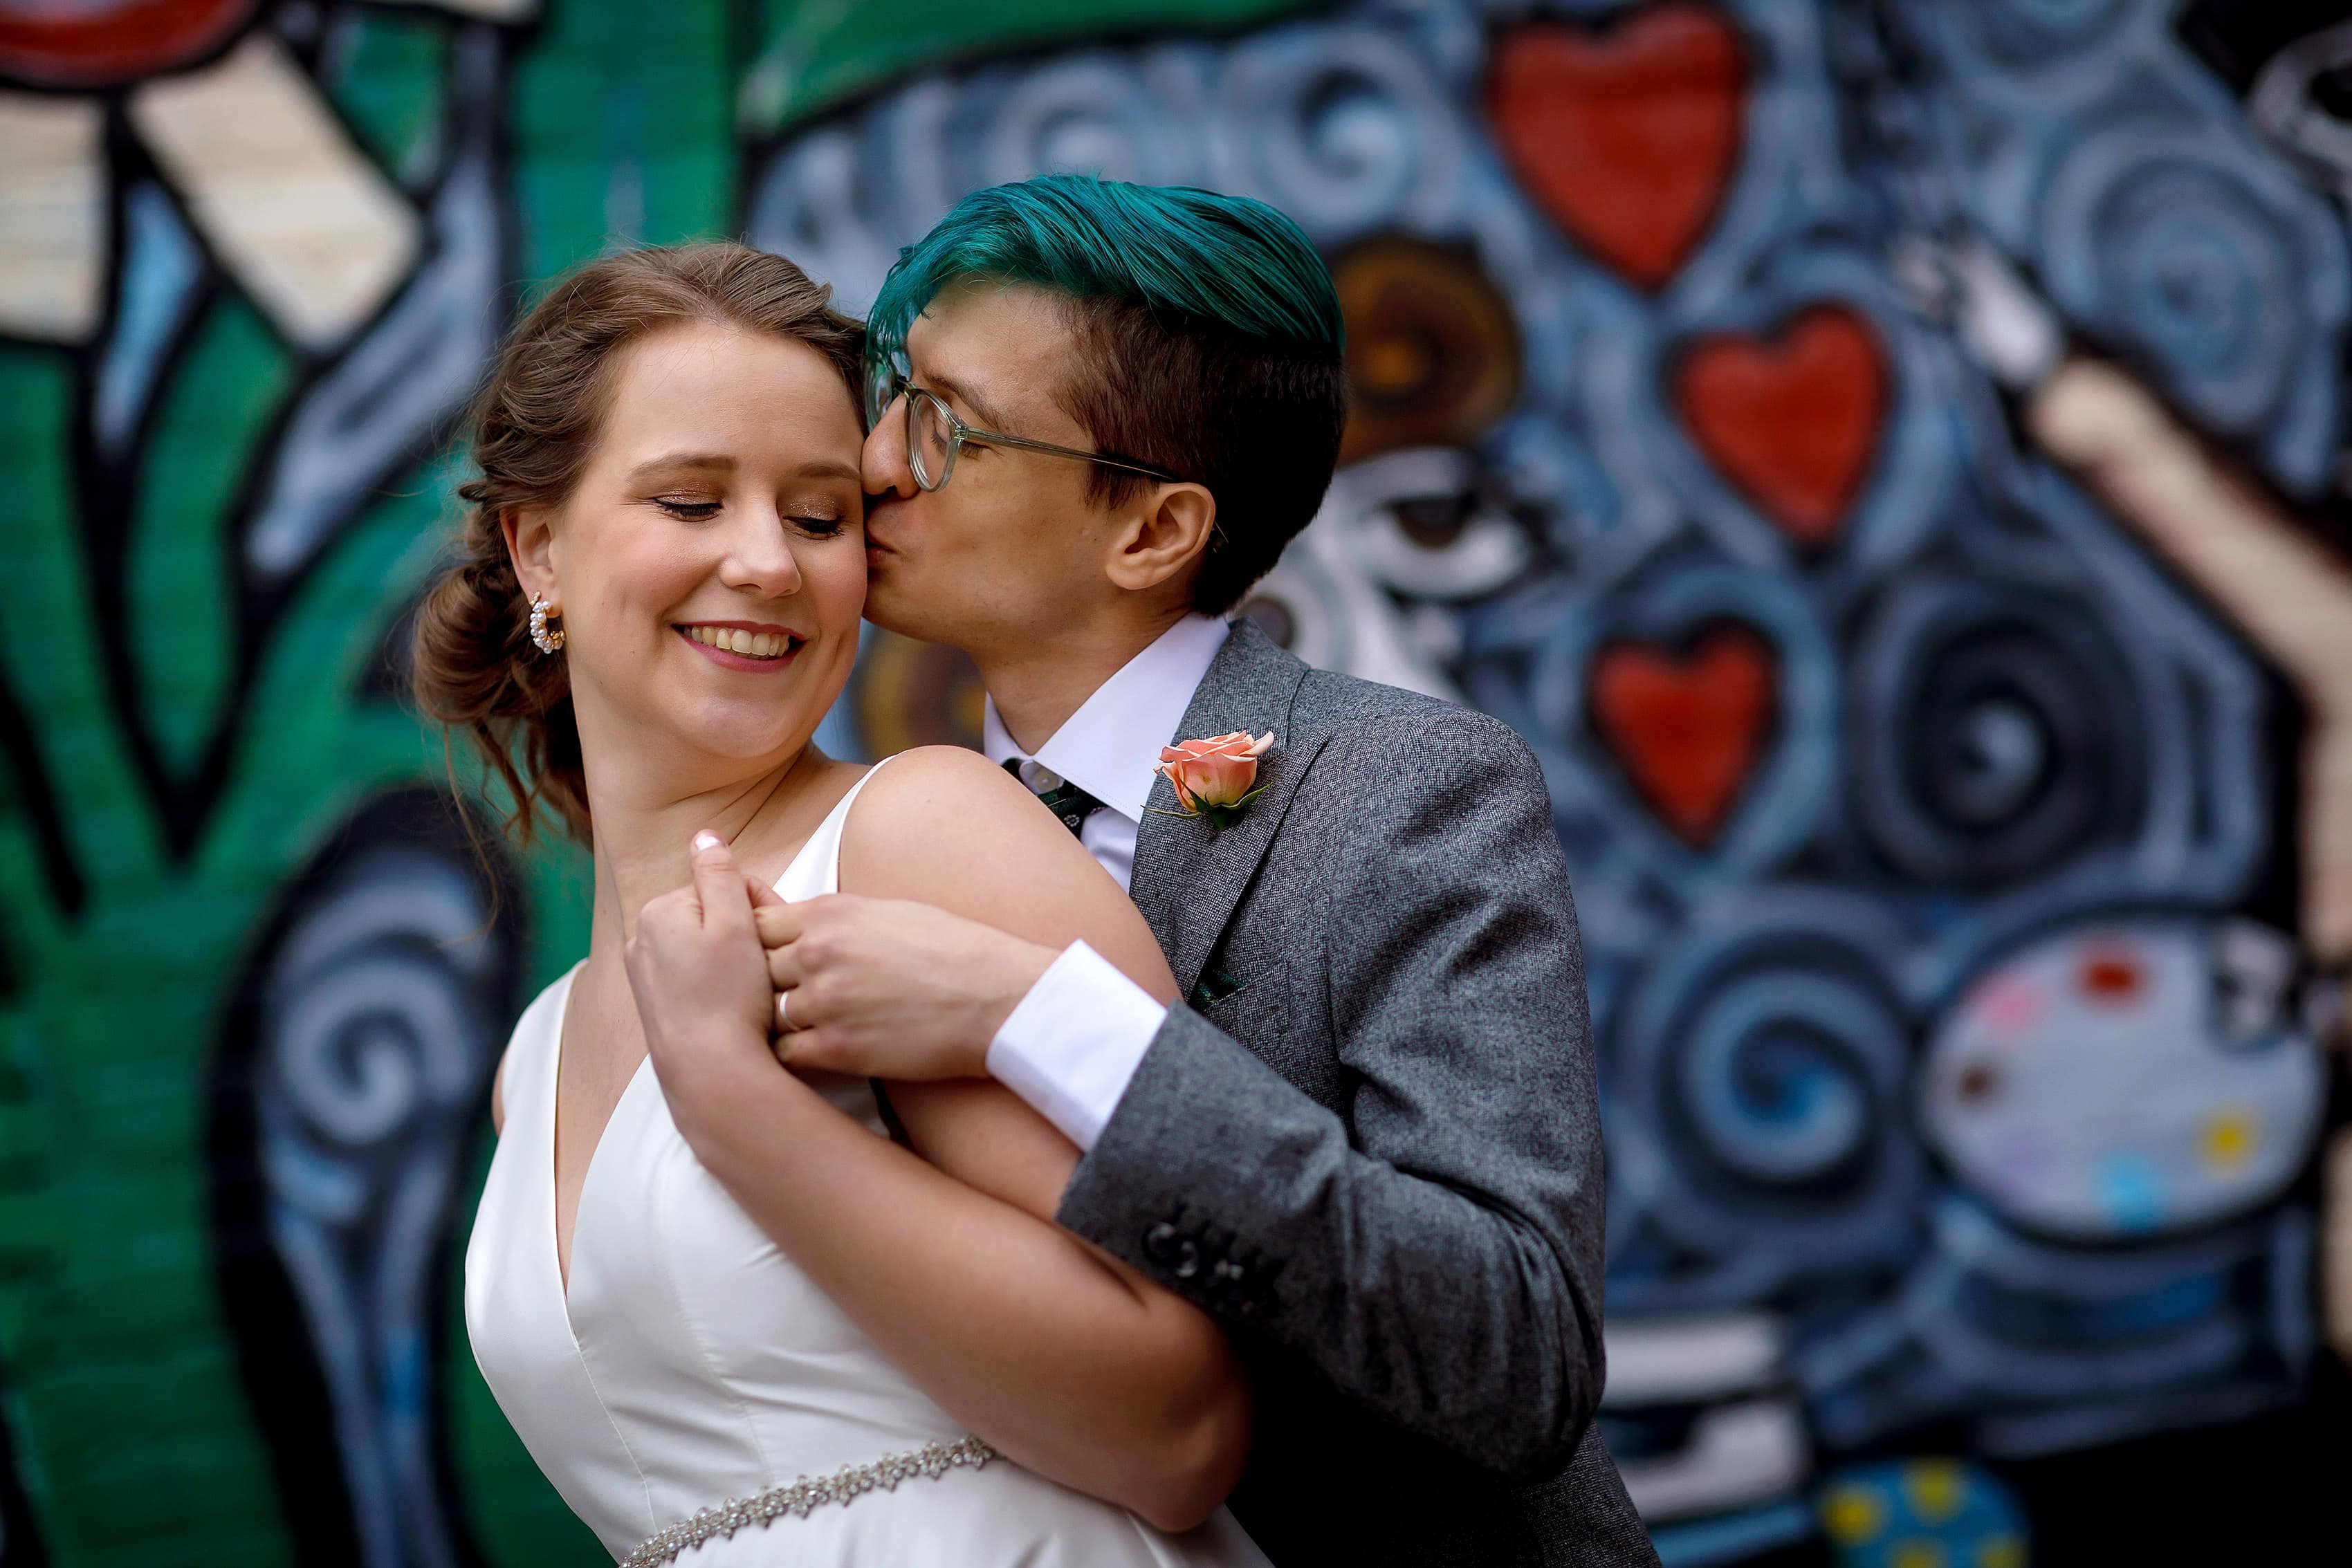 bride and groom portrait in downtown Ferndale, Michigan in front of mural